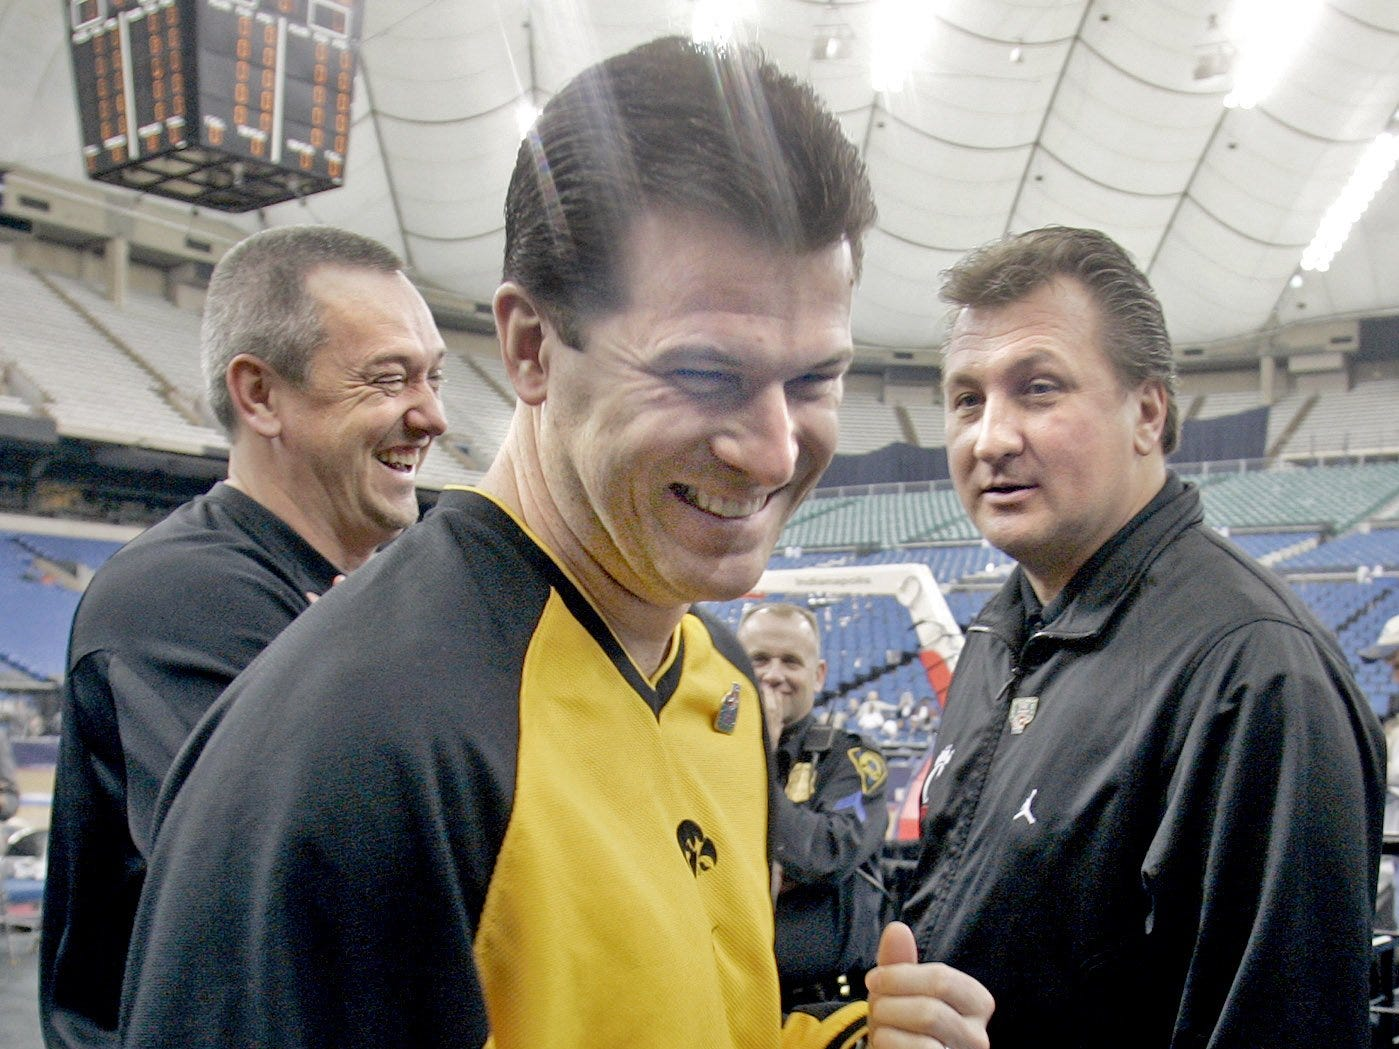 From 2005: Iowa coach Steve Alford, center, gets a kick out of Cincinnati coach Bob Huggins, right, who cracked a few jokes about Iowa associate head coach Craig Neal, left, and his buzz cut after practice at the RCA Dome before the NCAA Tournament in Indianapolis.